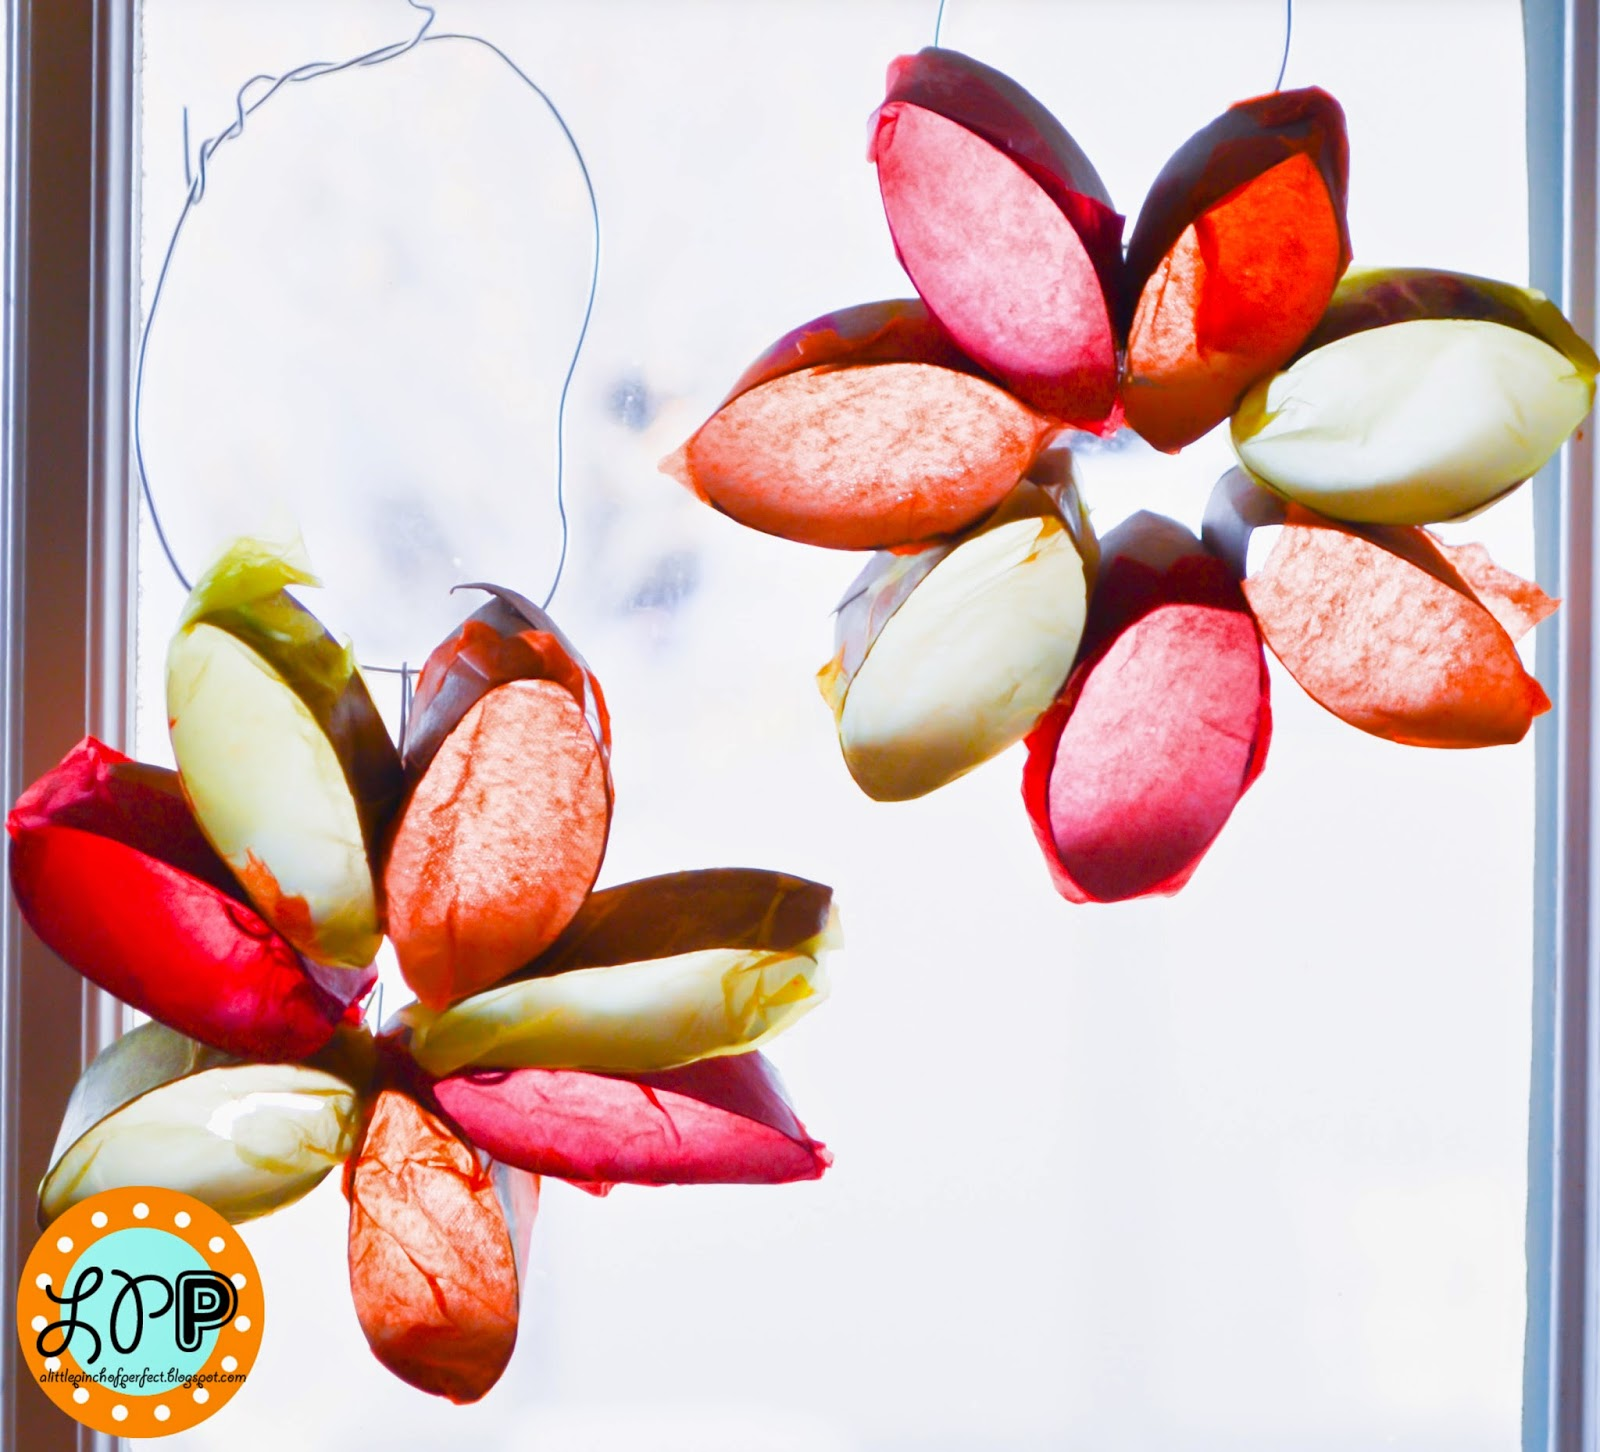 Sun catcher flowers with toilet paper rolls kid craft we made stained glass flowers using toilet paper rolls and tissue paper they are simple to make and so pretty when they are done mightylinksfo Choice Image